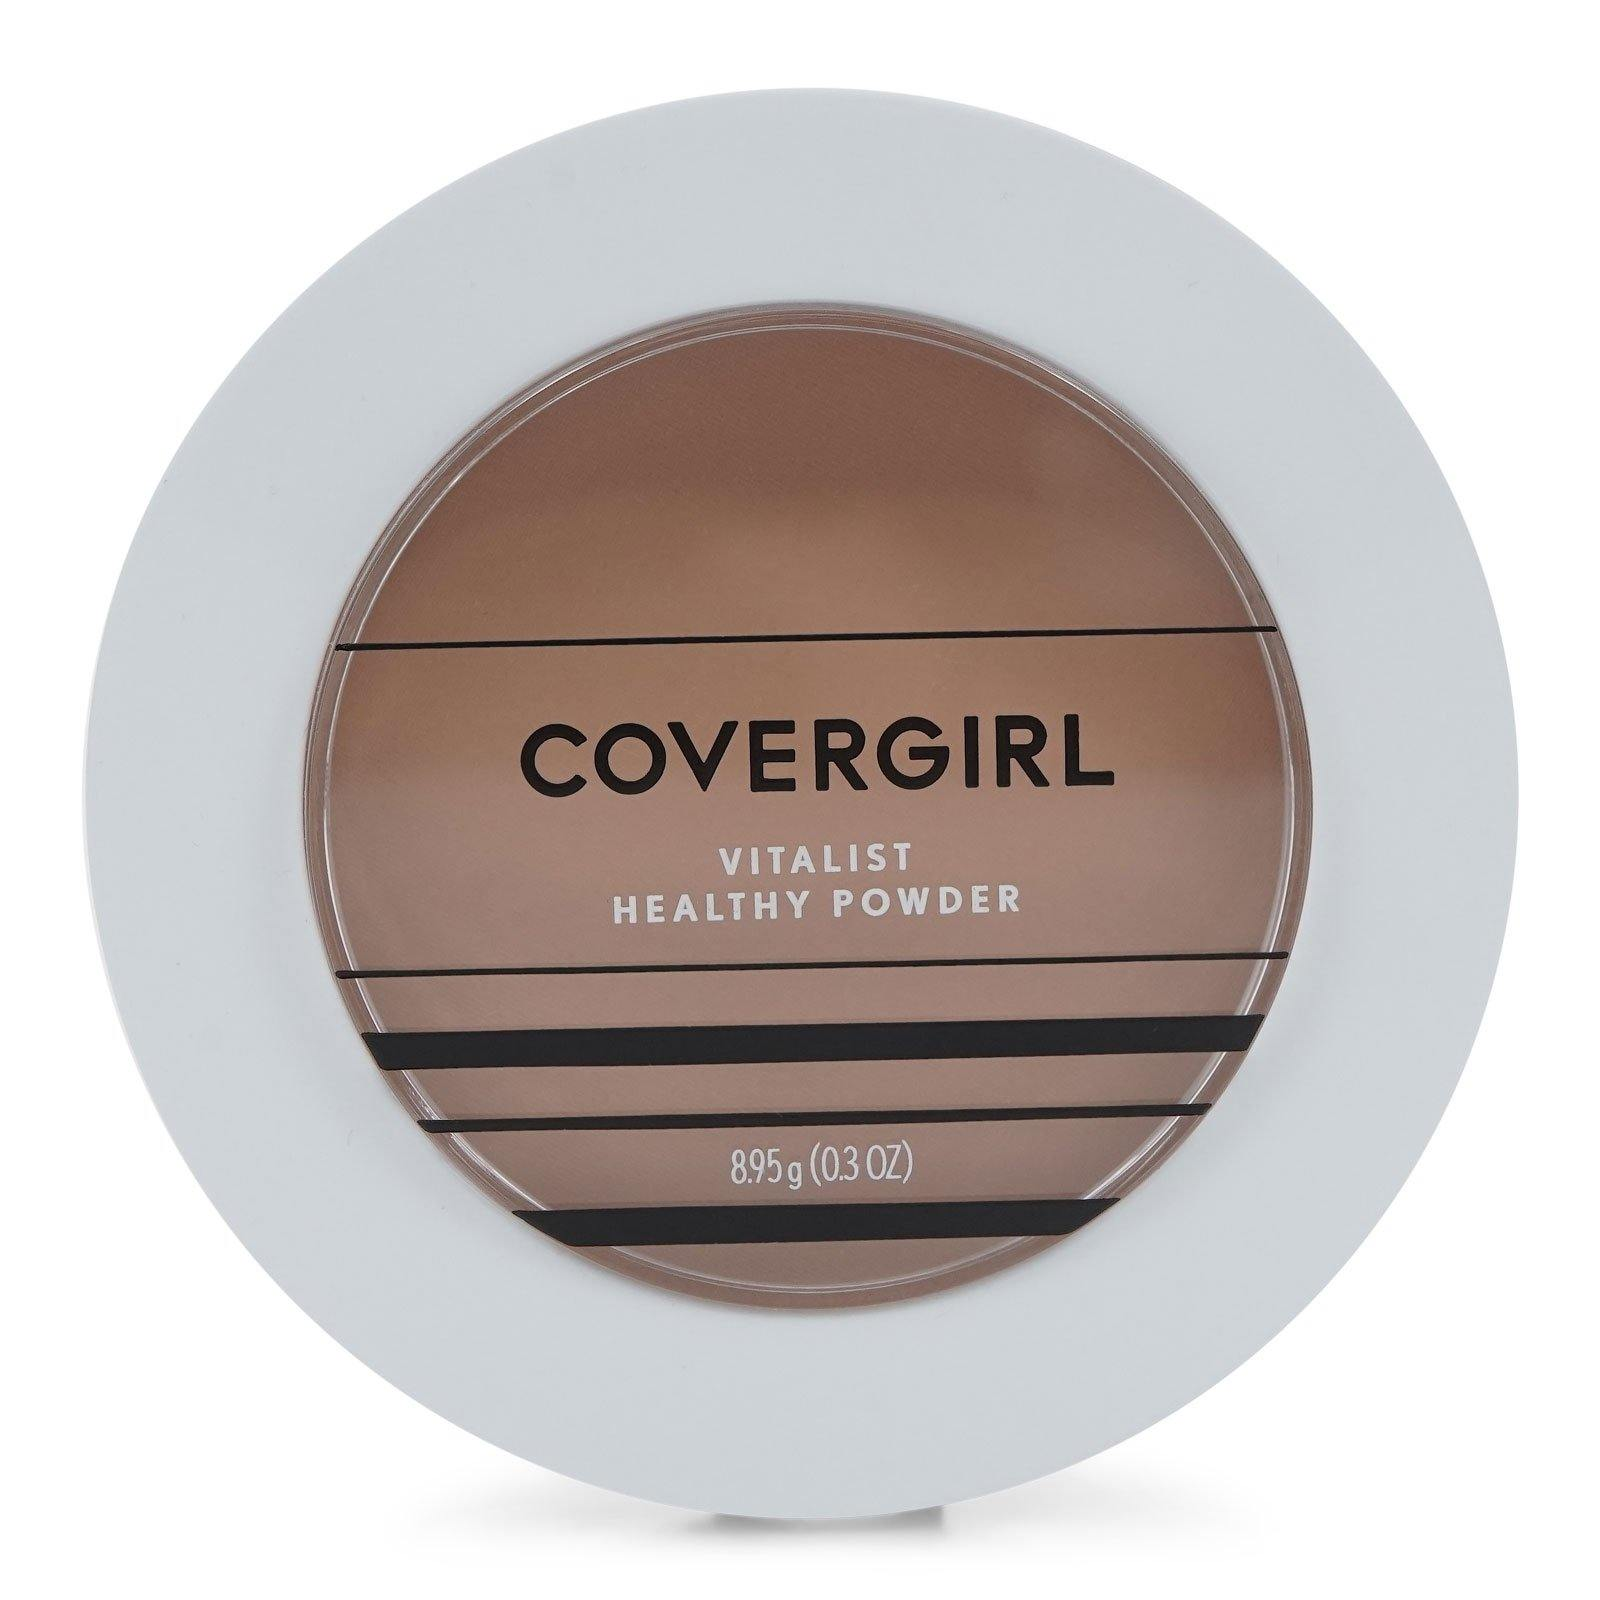 COVERGIRL VITALIST HEALTHY POWDER- MEDIUM BEIGE (12/cs)